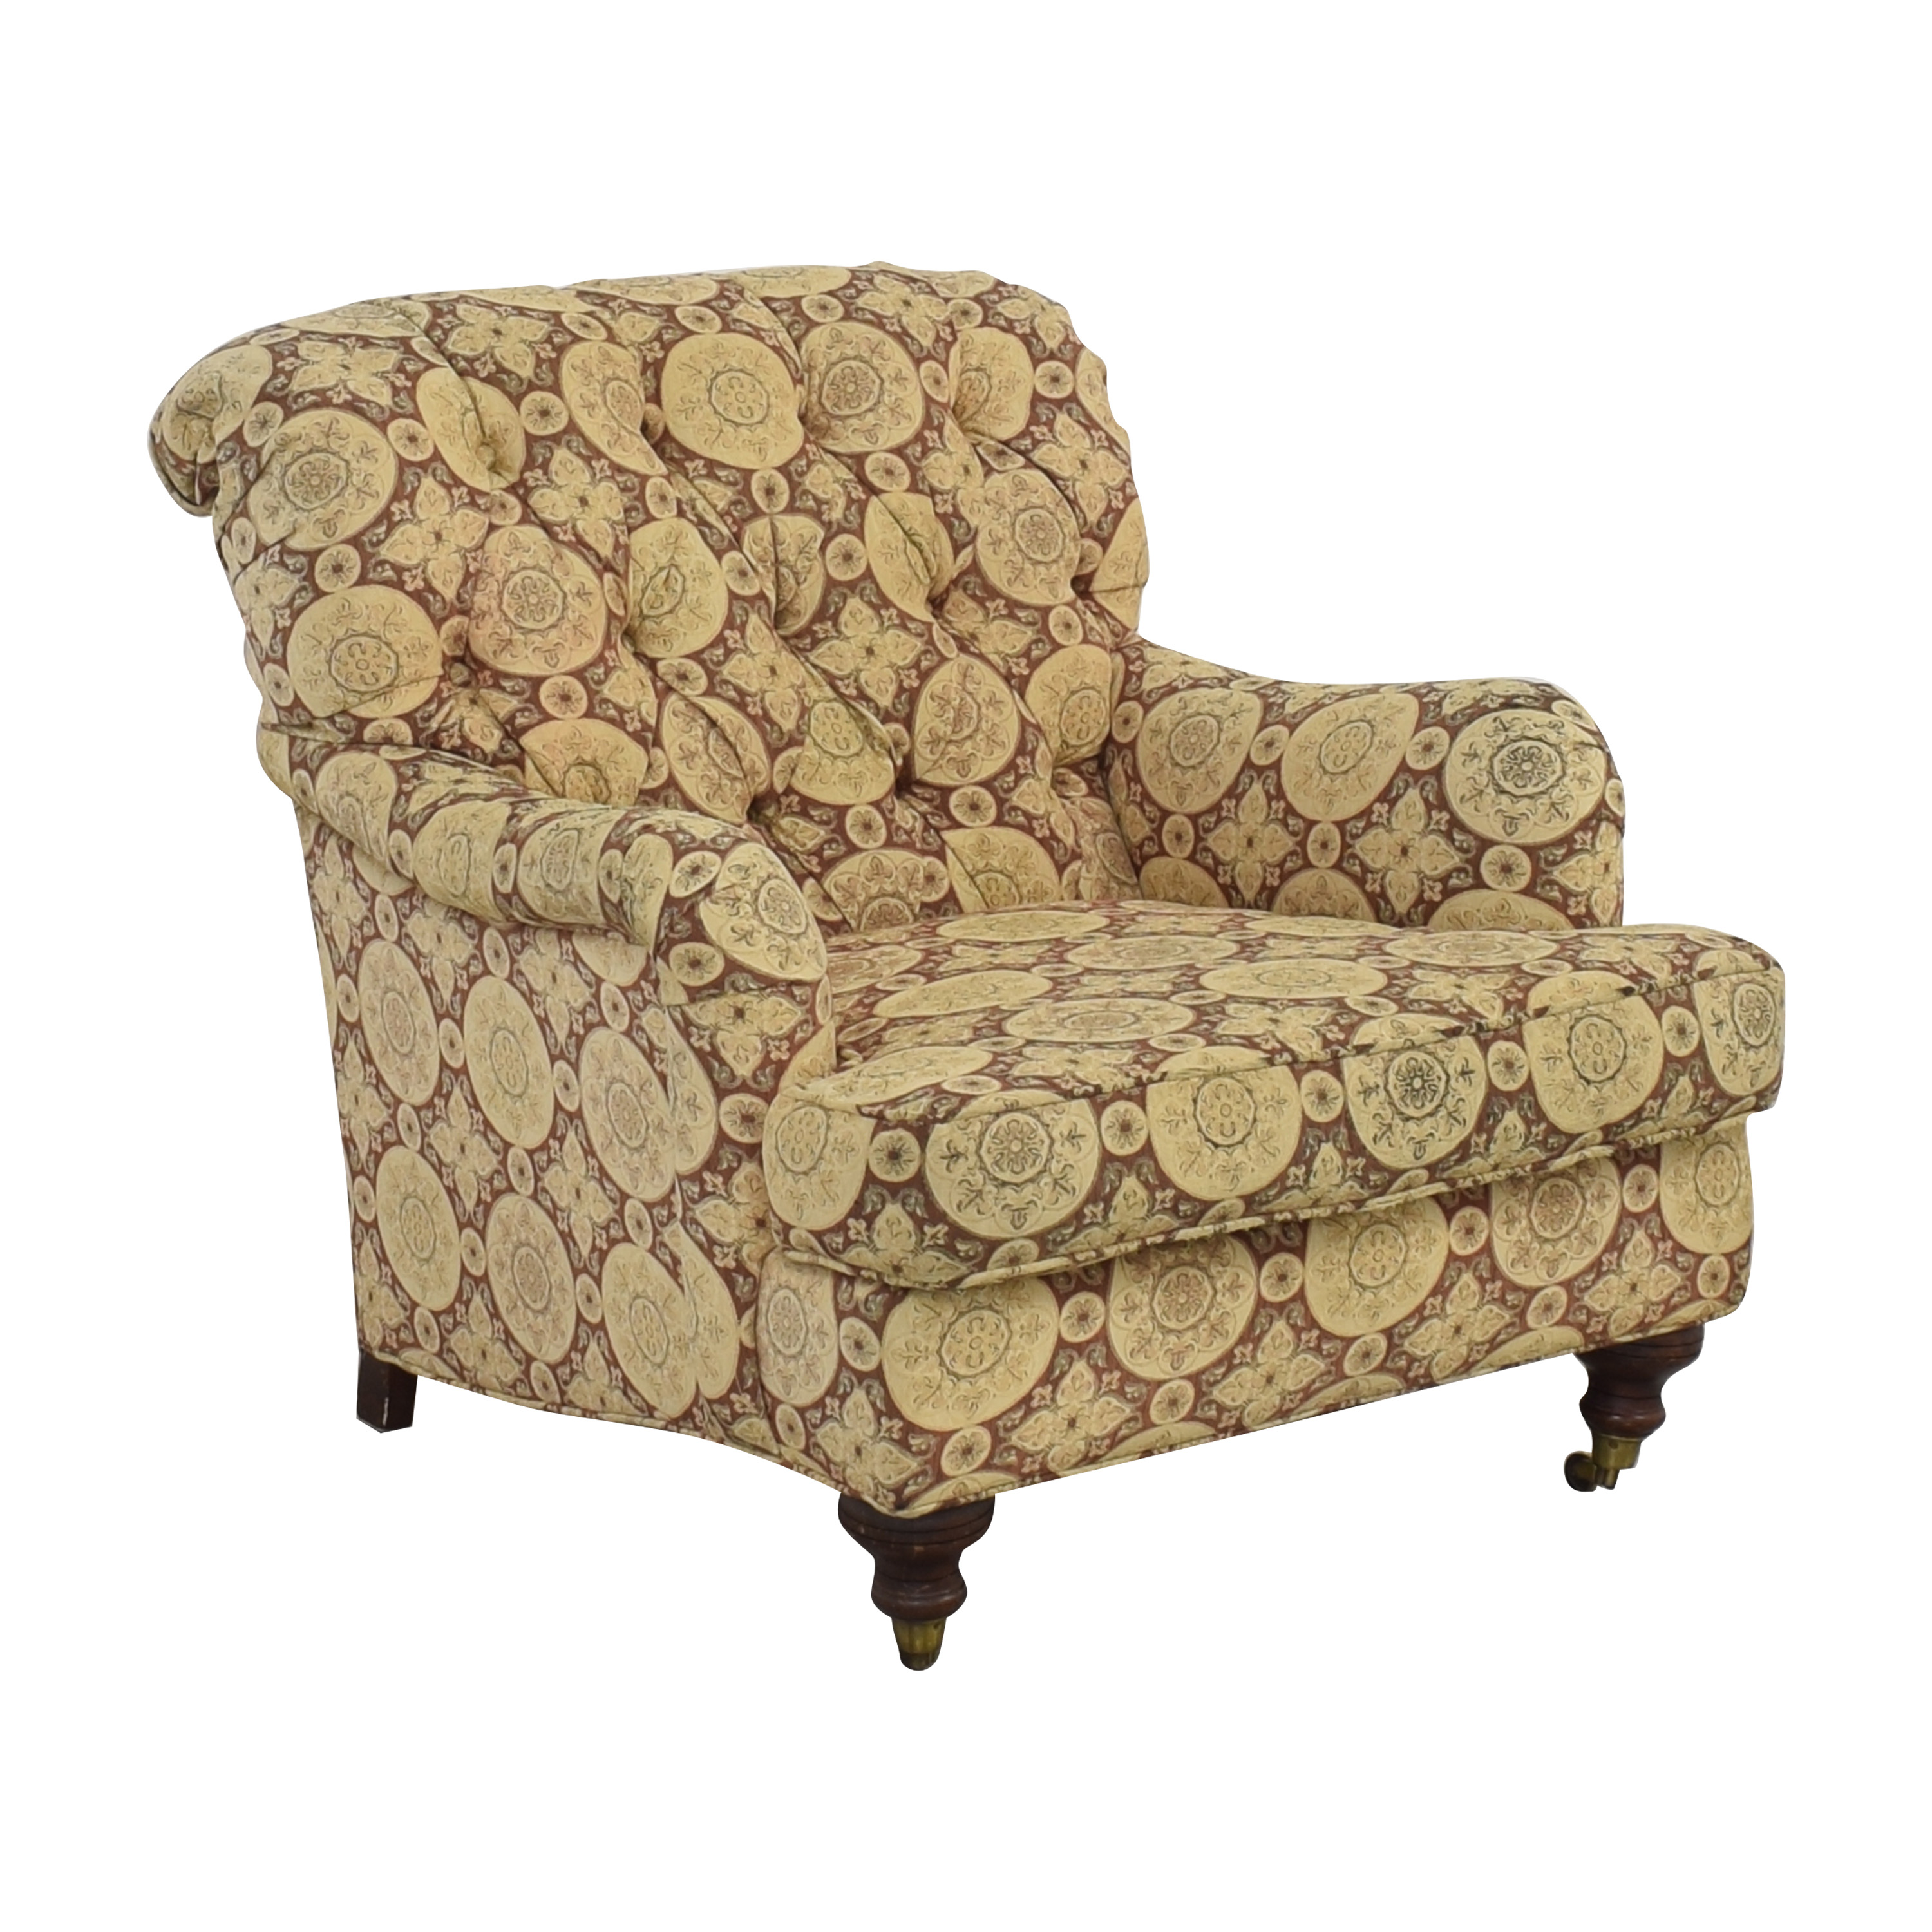 Lillian August Lillian August Upholstered Arm Chair